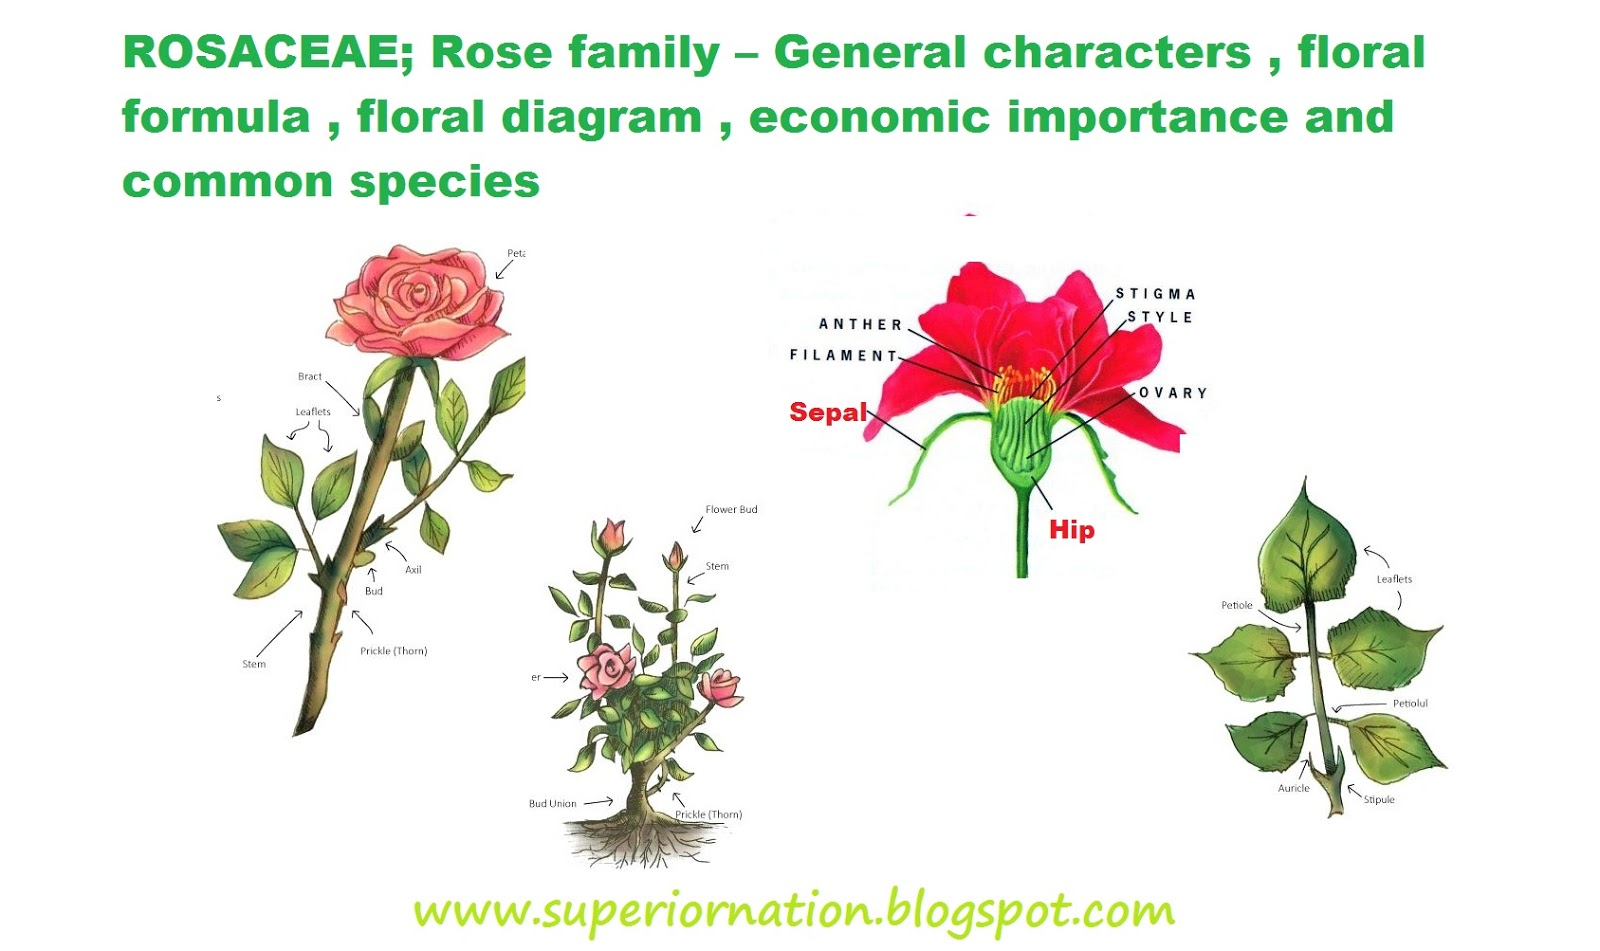 hight resolution of rosaceae rose family general characters floral formula floral diagram economic importance